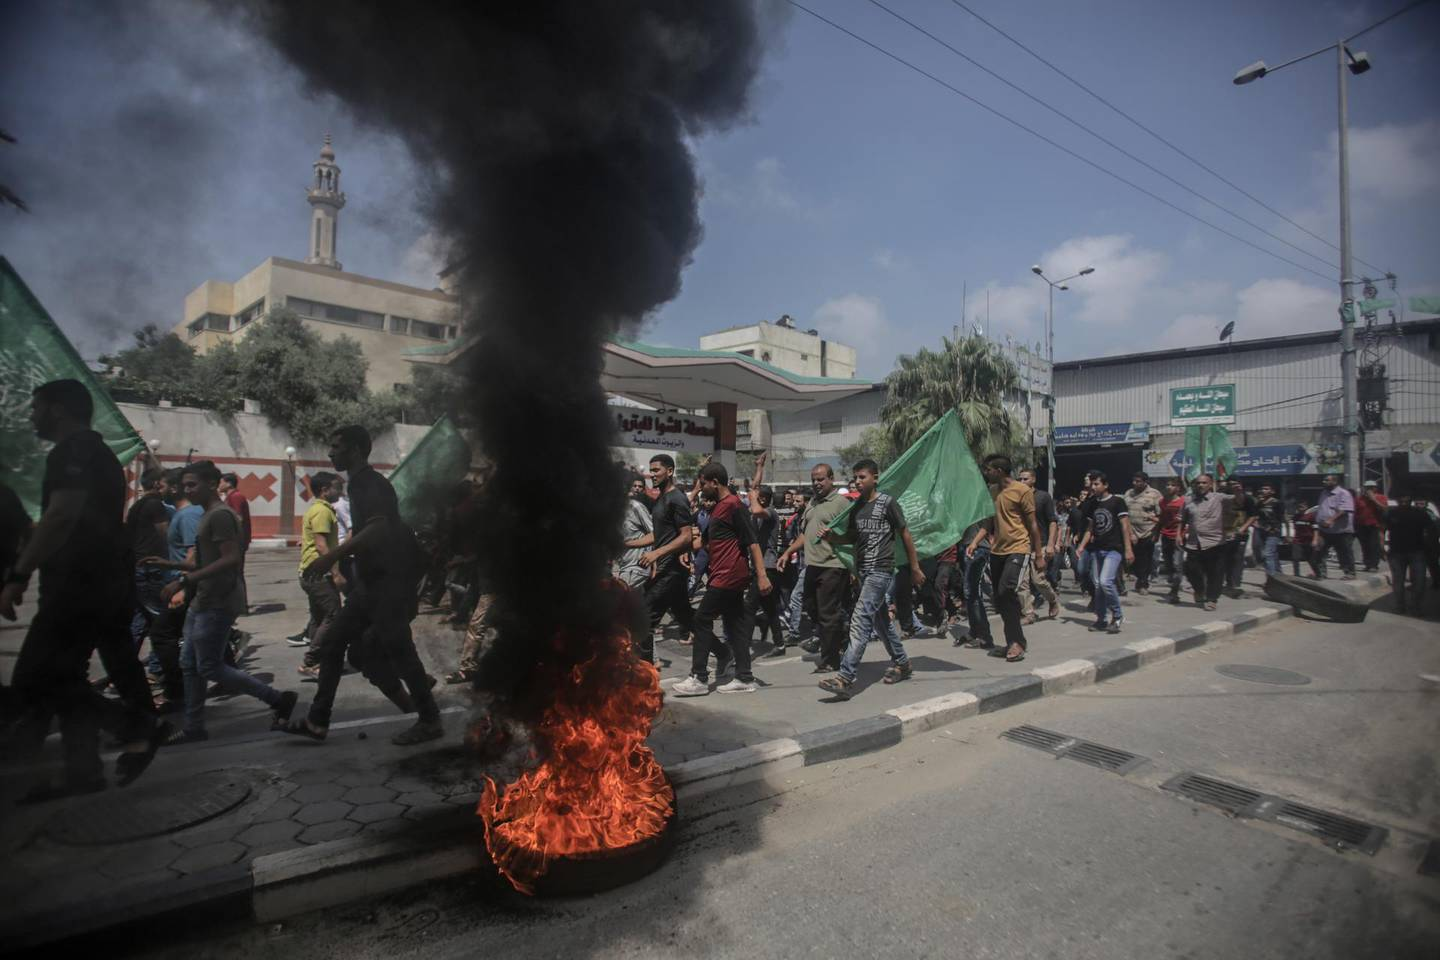 epa06870430 Palestinians attend the funeral of Mohammed Jamal Abu Halima, 22, in the neighborhood of Al- Shejaeiya east of Gaza City on, 07 July 2018. Mohammed, 22, was shot dead during the clashes after Friday protest along the border between Israel and Gaza Strip.  EPA/HAITHAM IMAD